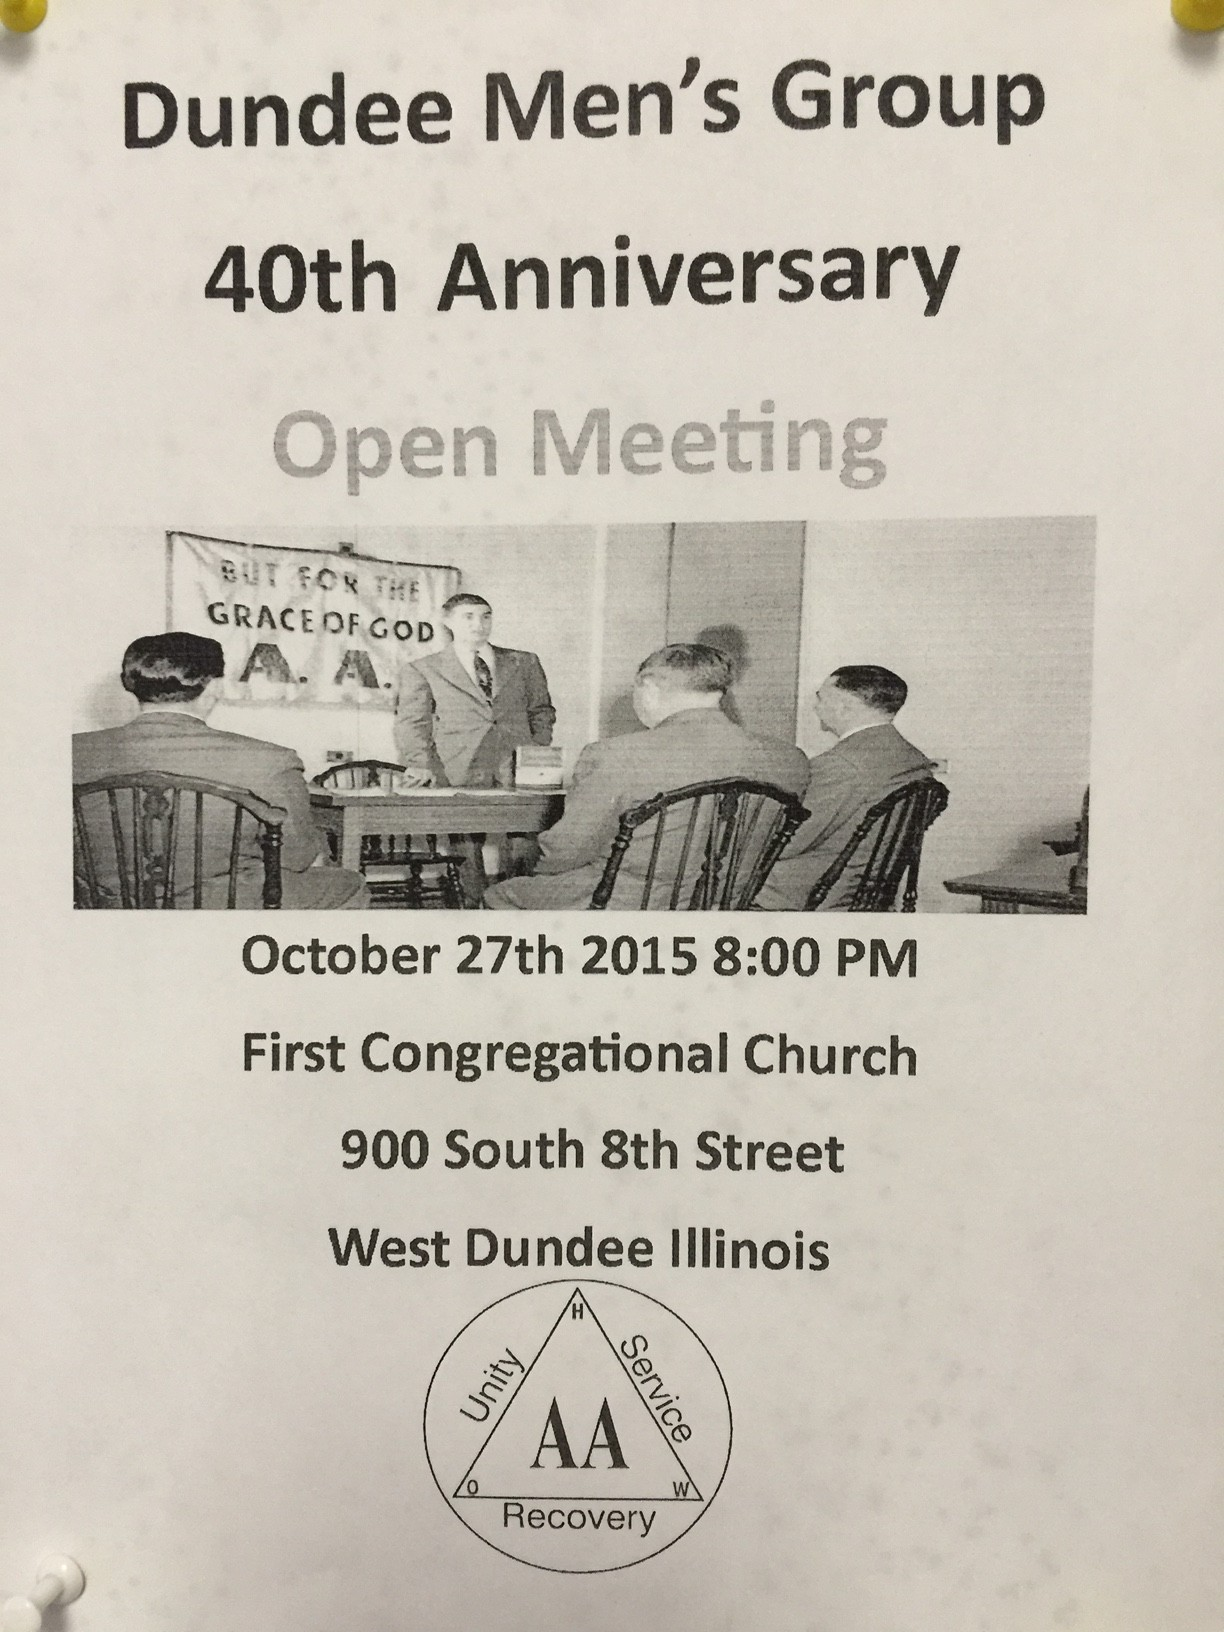 Dundee Men's Group 40th Anniversary 1